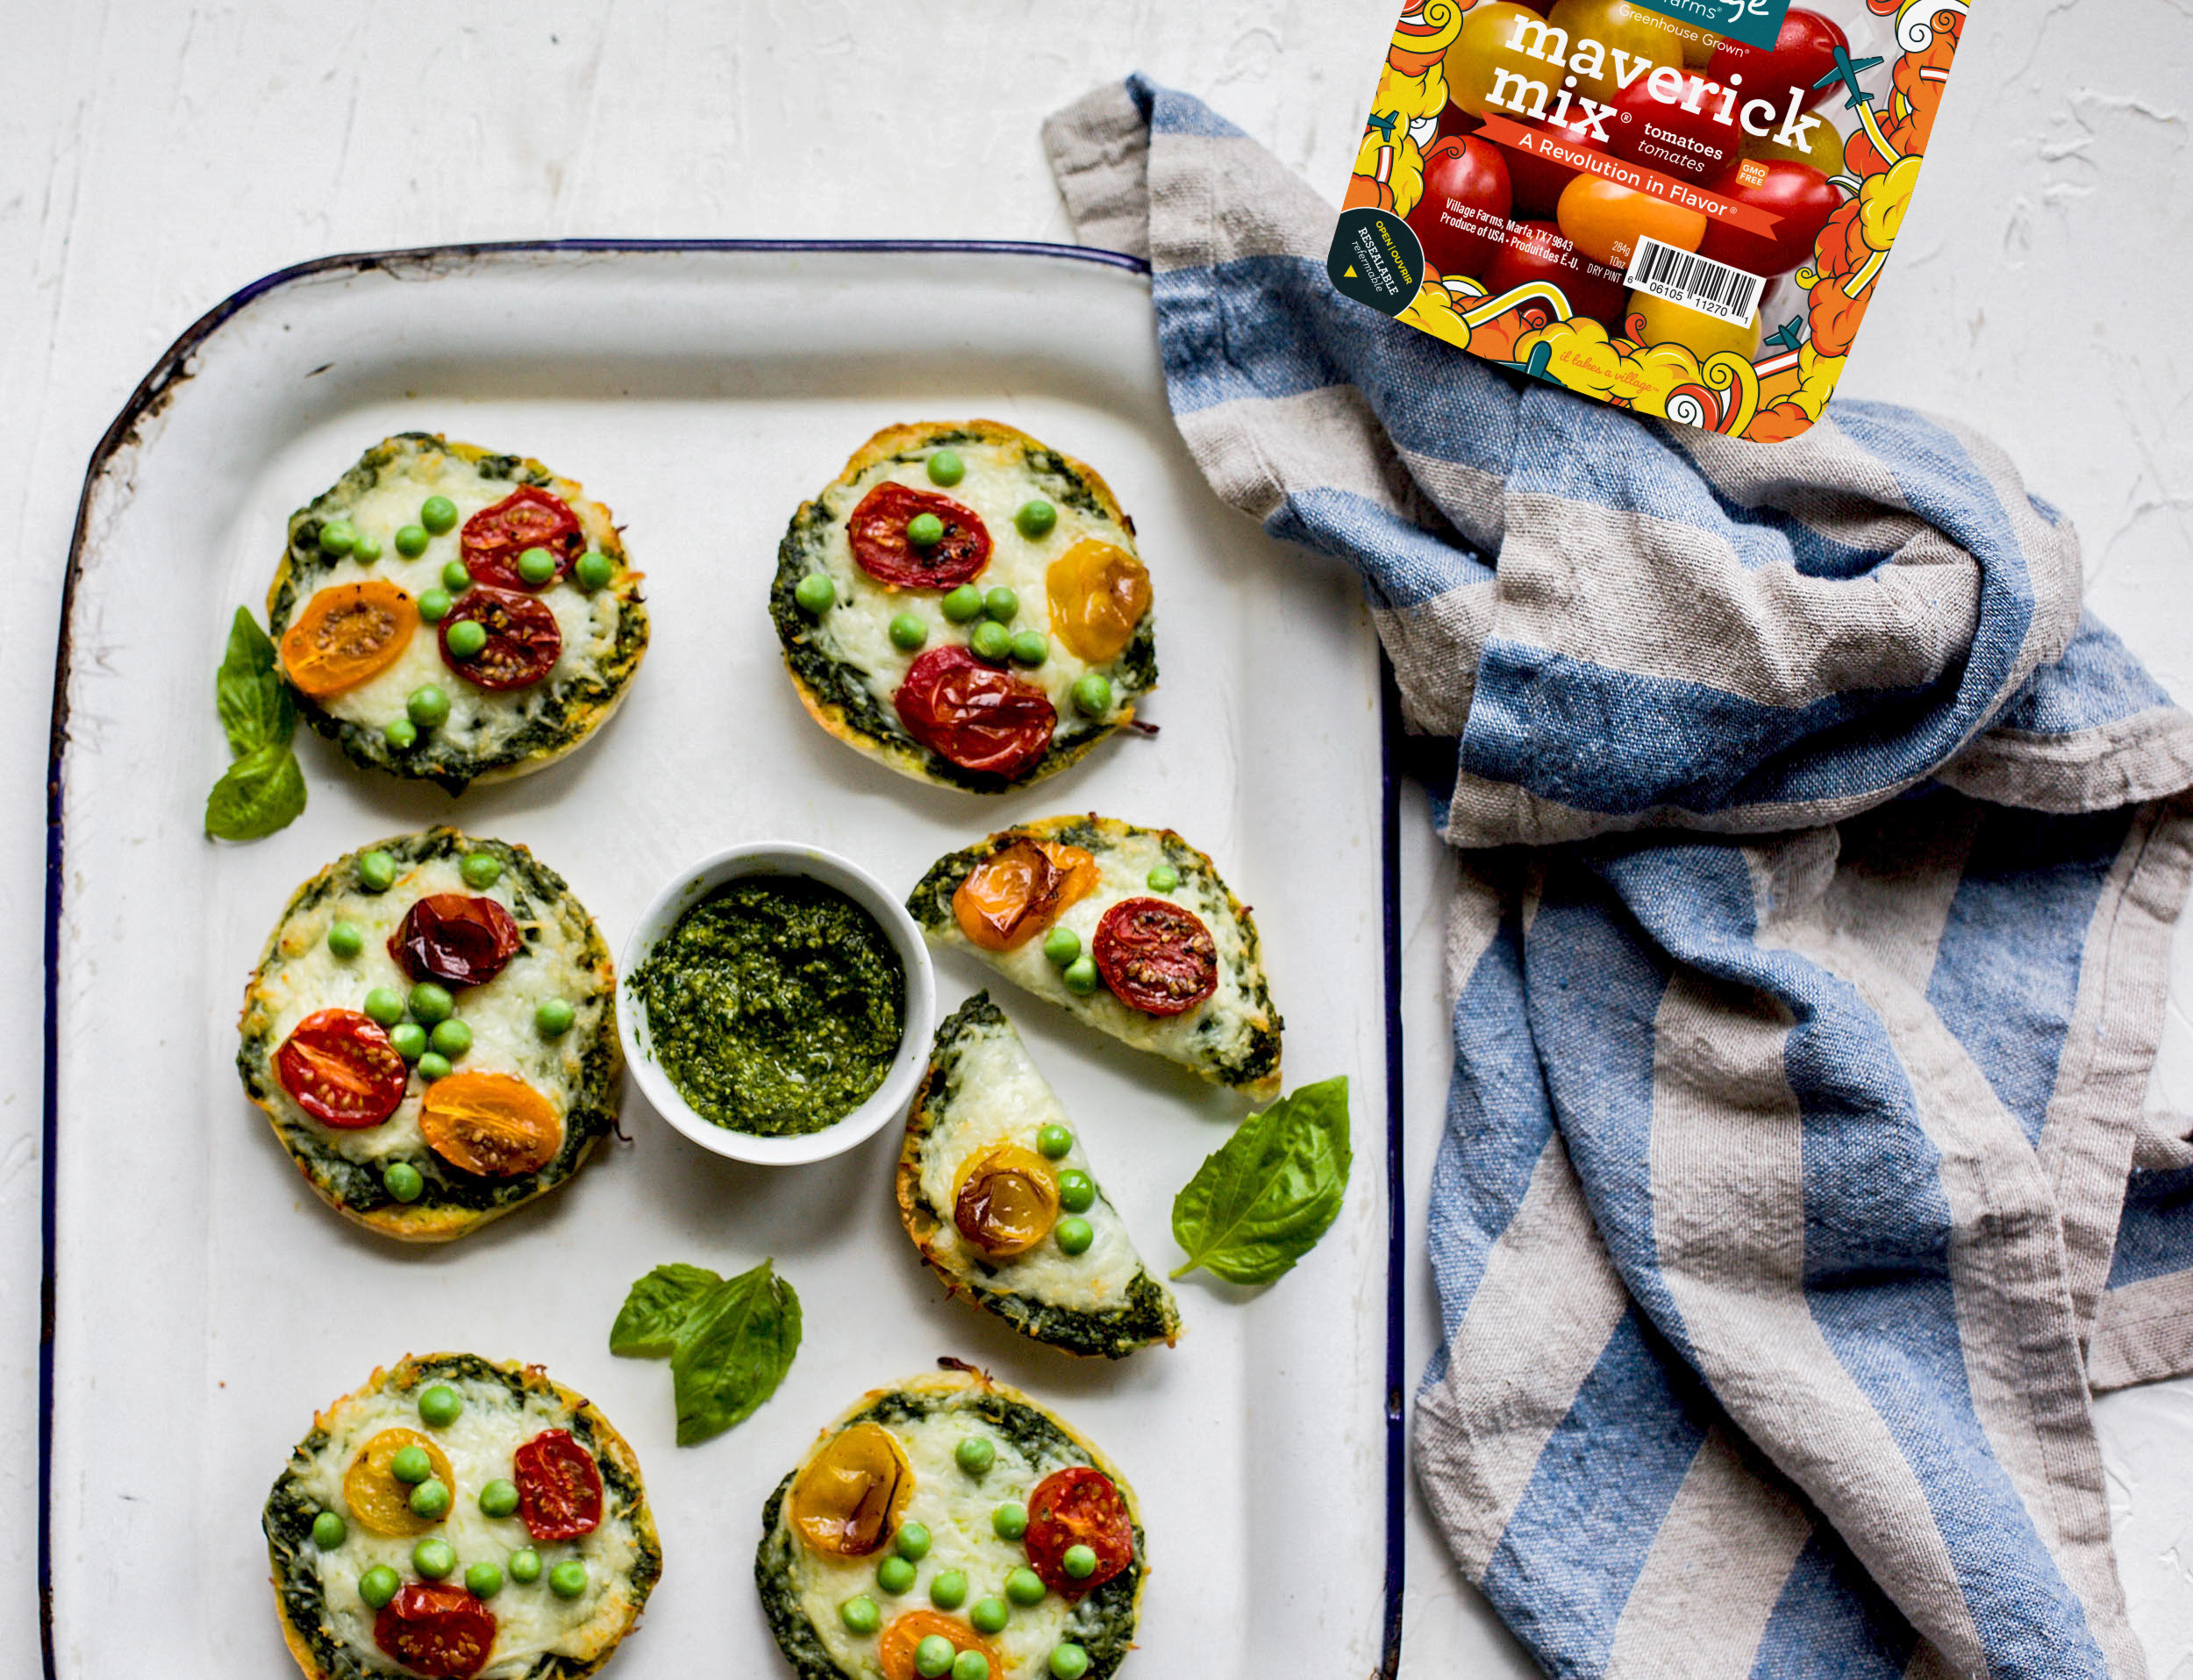 Green Monster English Muffin Pesto Pizzas